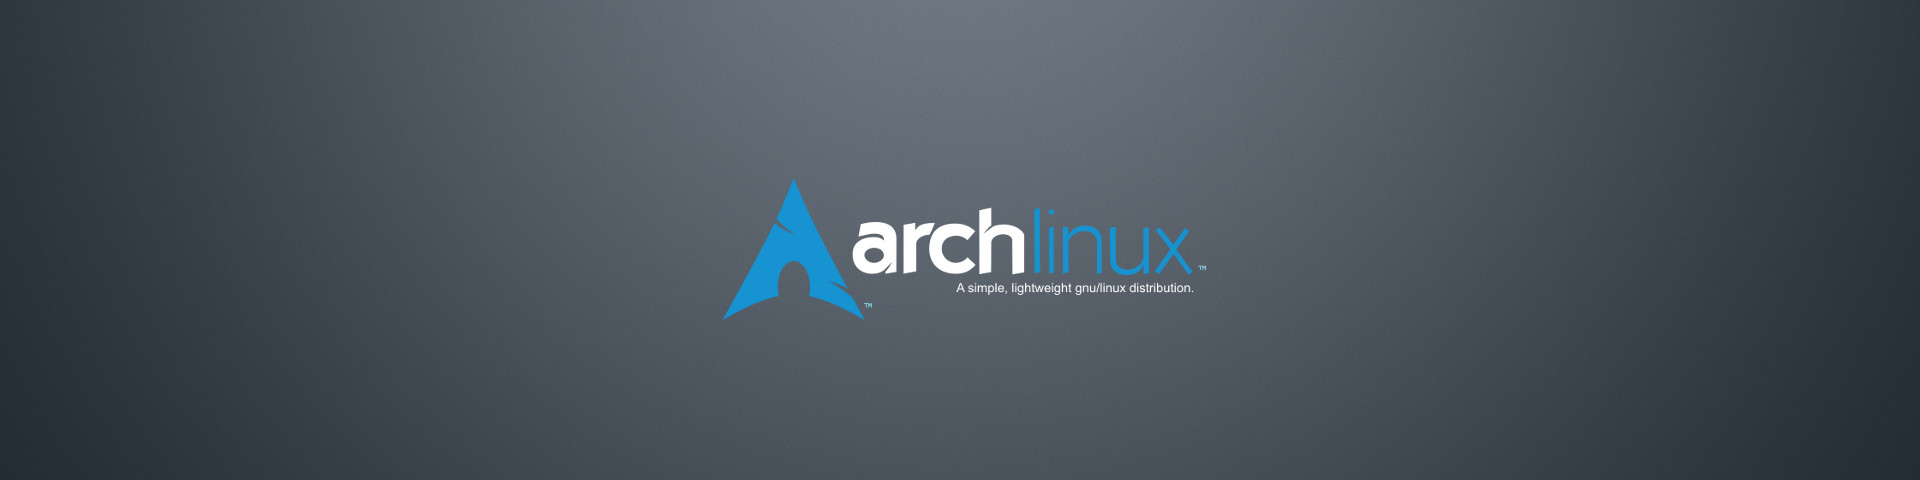 Linux and me: Why I fell in love with Arch Linux feature image